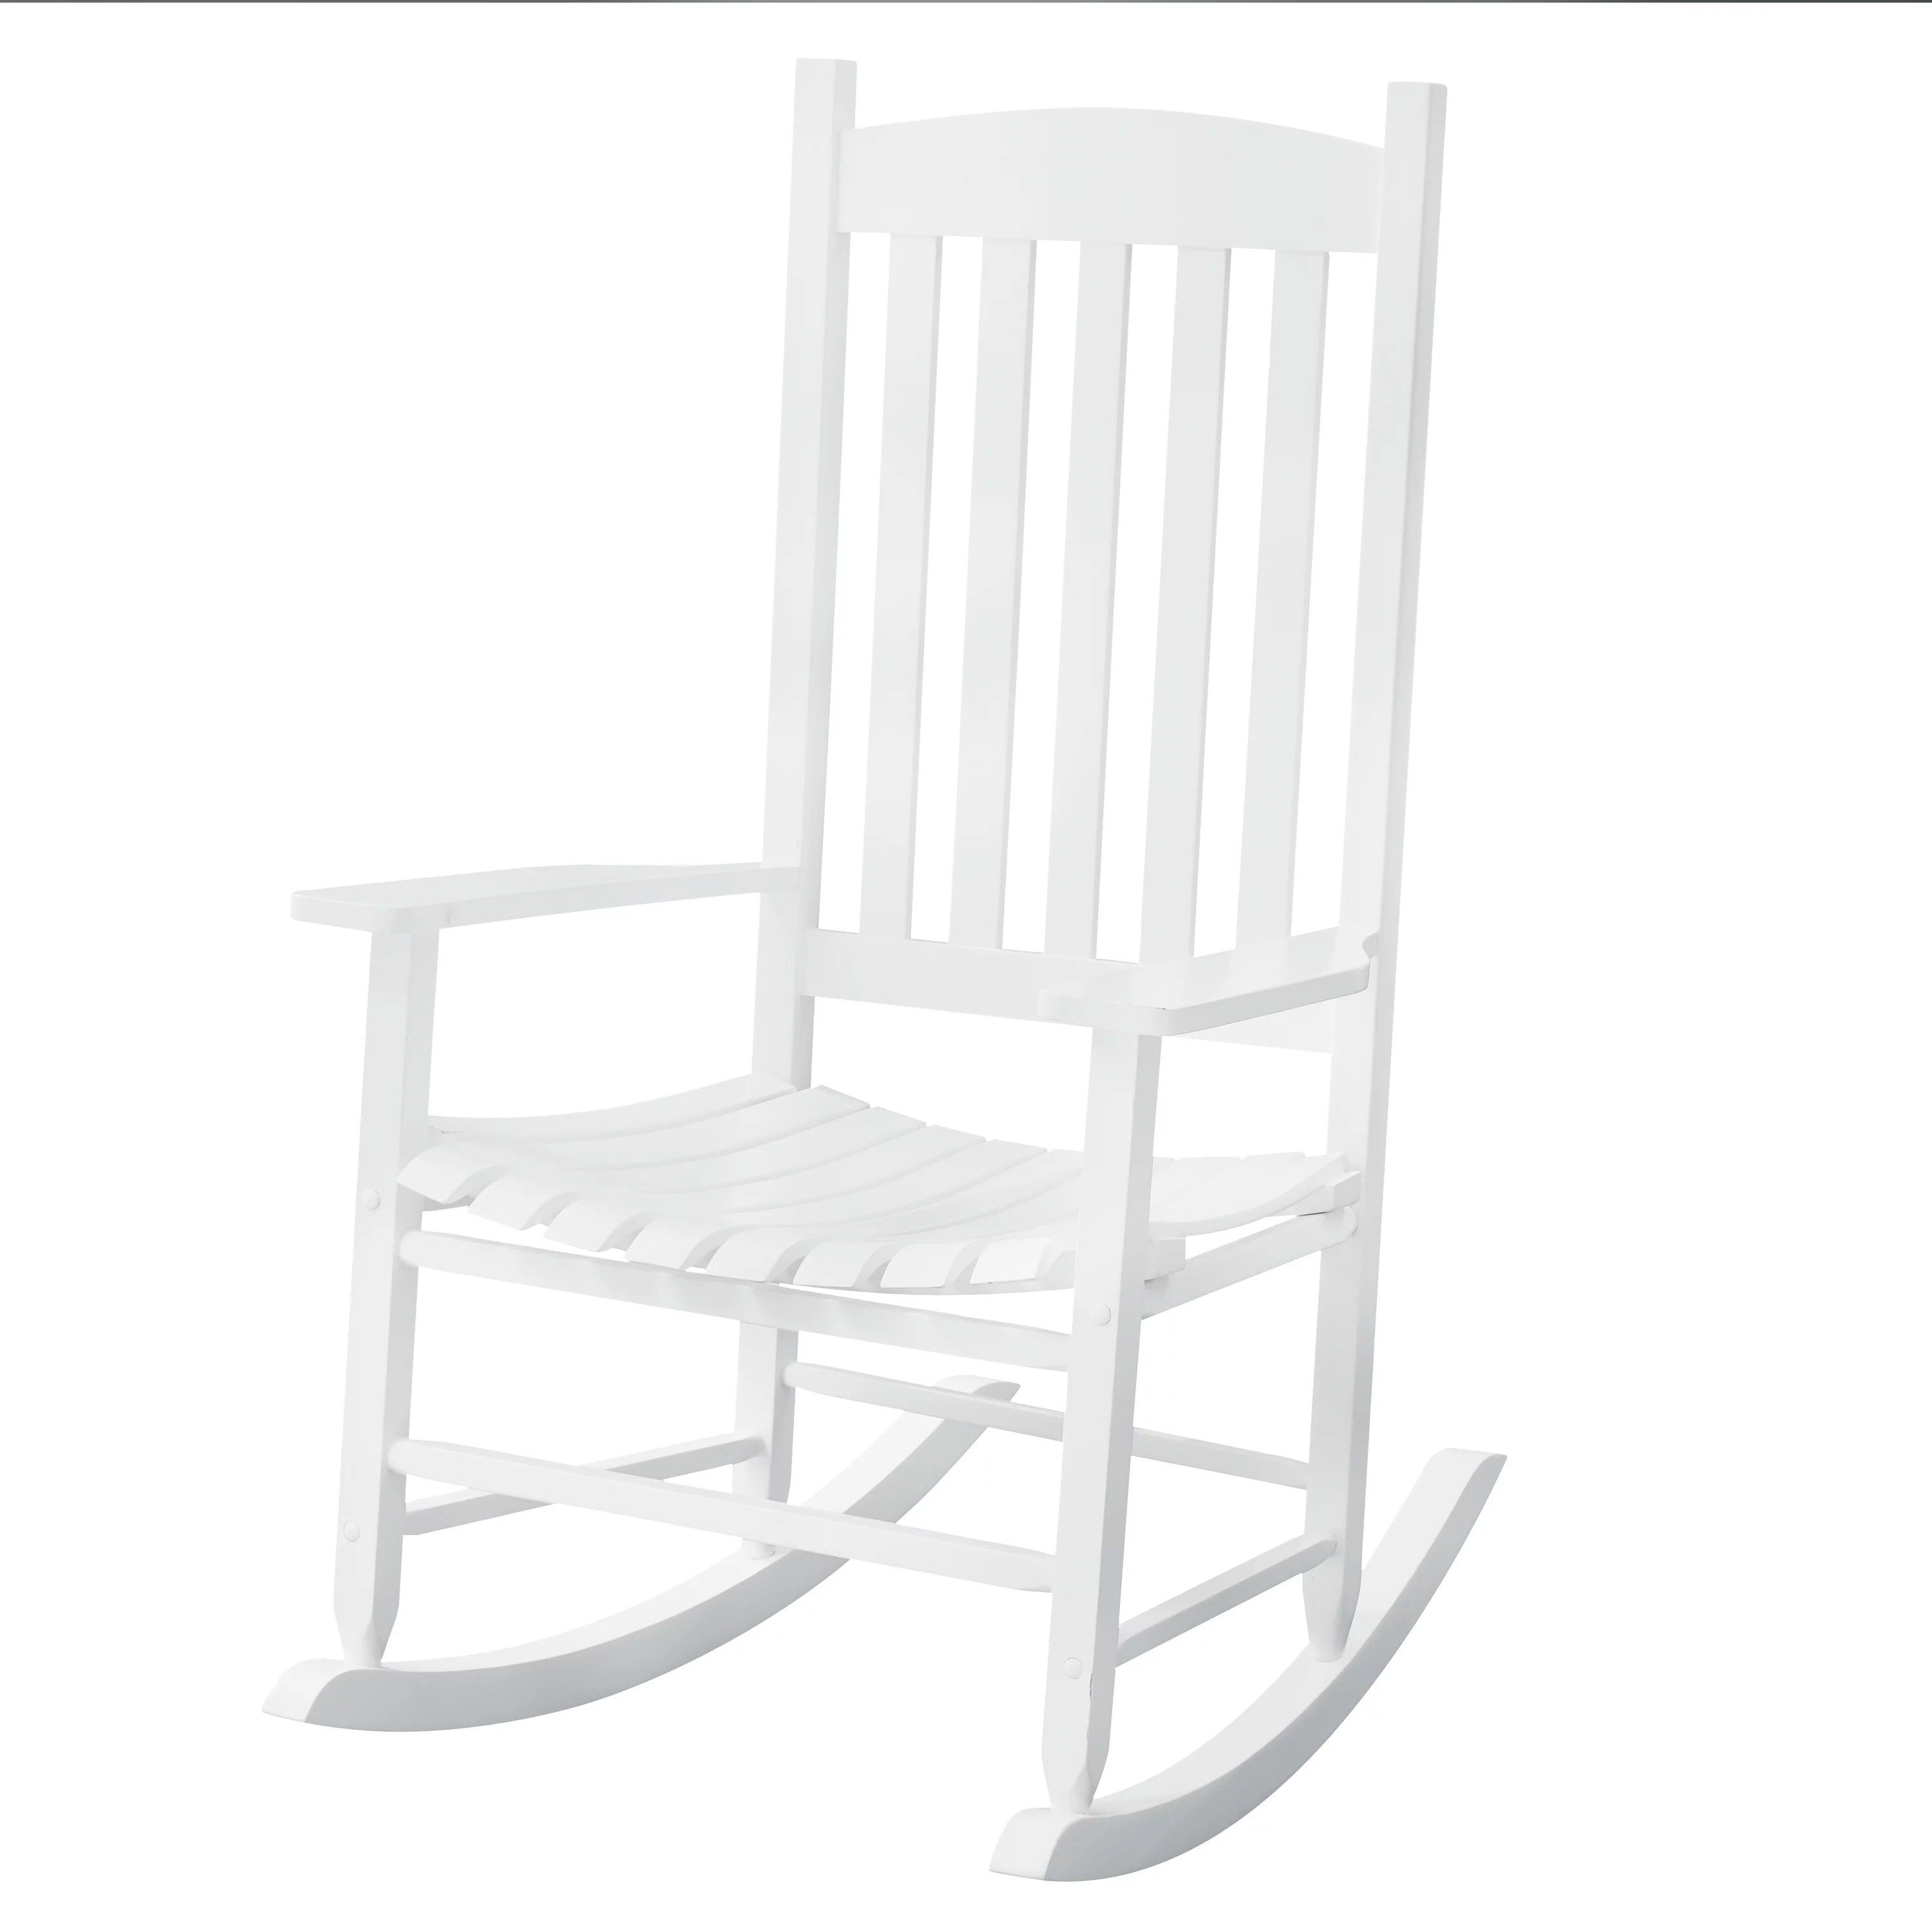 Rocking Chair White Solid Wood Rocking Chair Rocker Porch Indoor Outdoor Patio